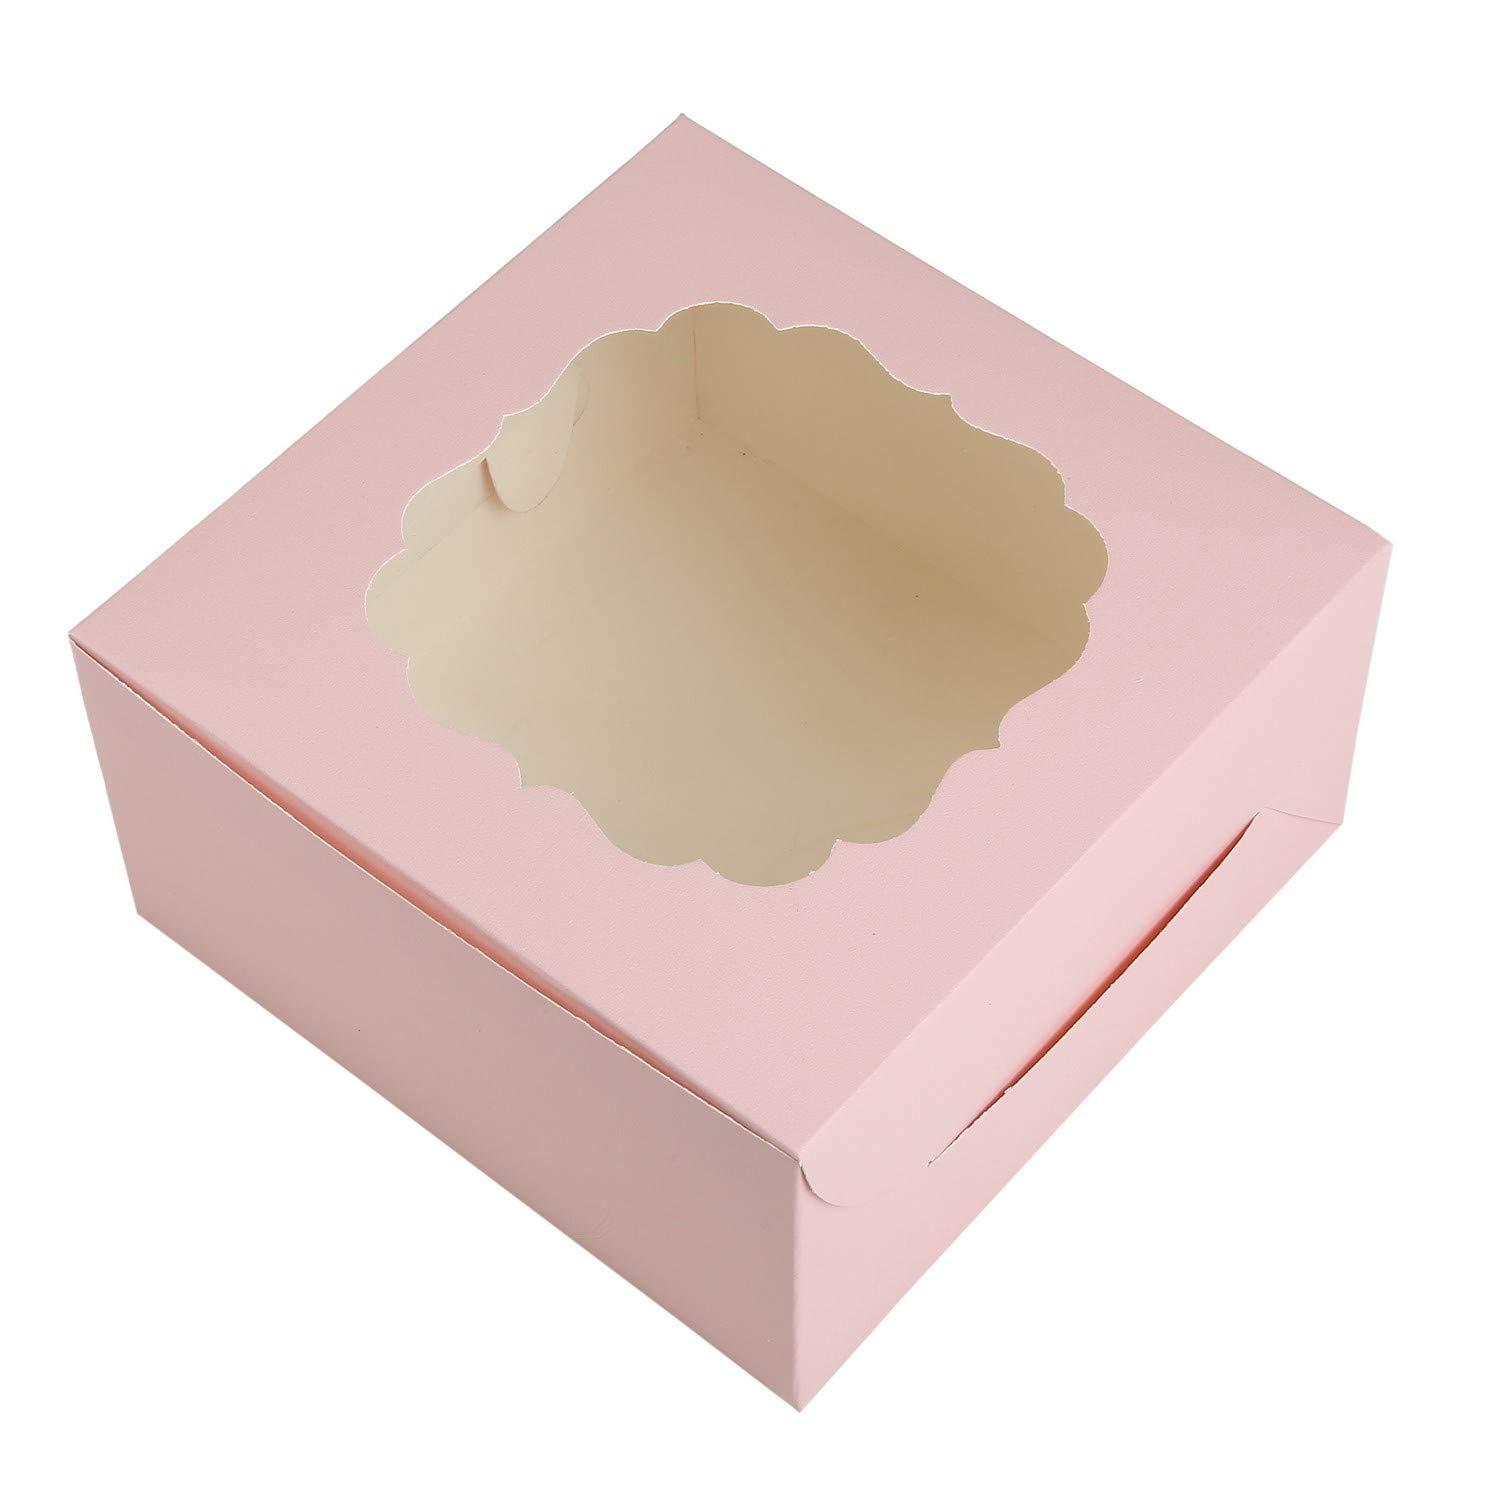 Paper Pep Packaging Collection Pink Top Display 1 Pound Cake Soft Paper Box:  Amazon.in: Home Improvement